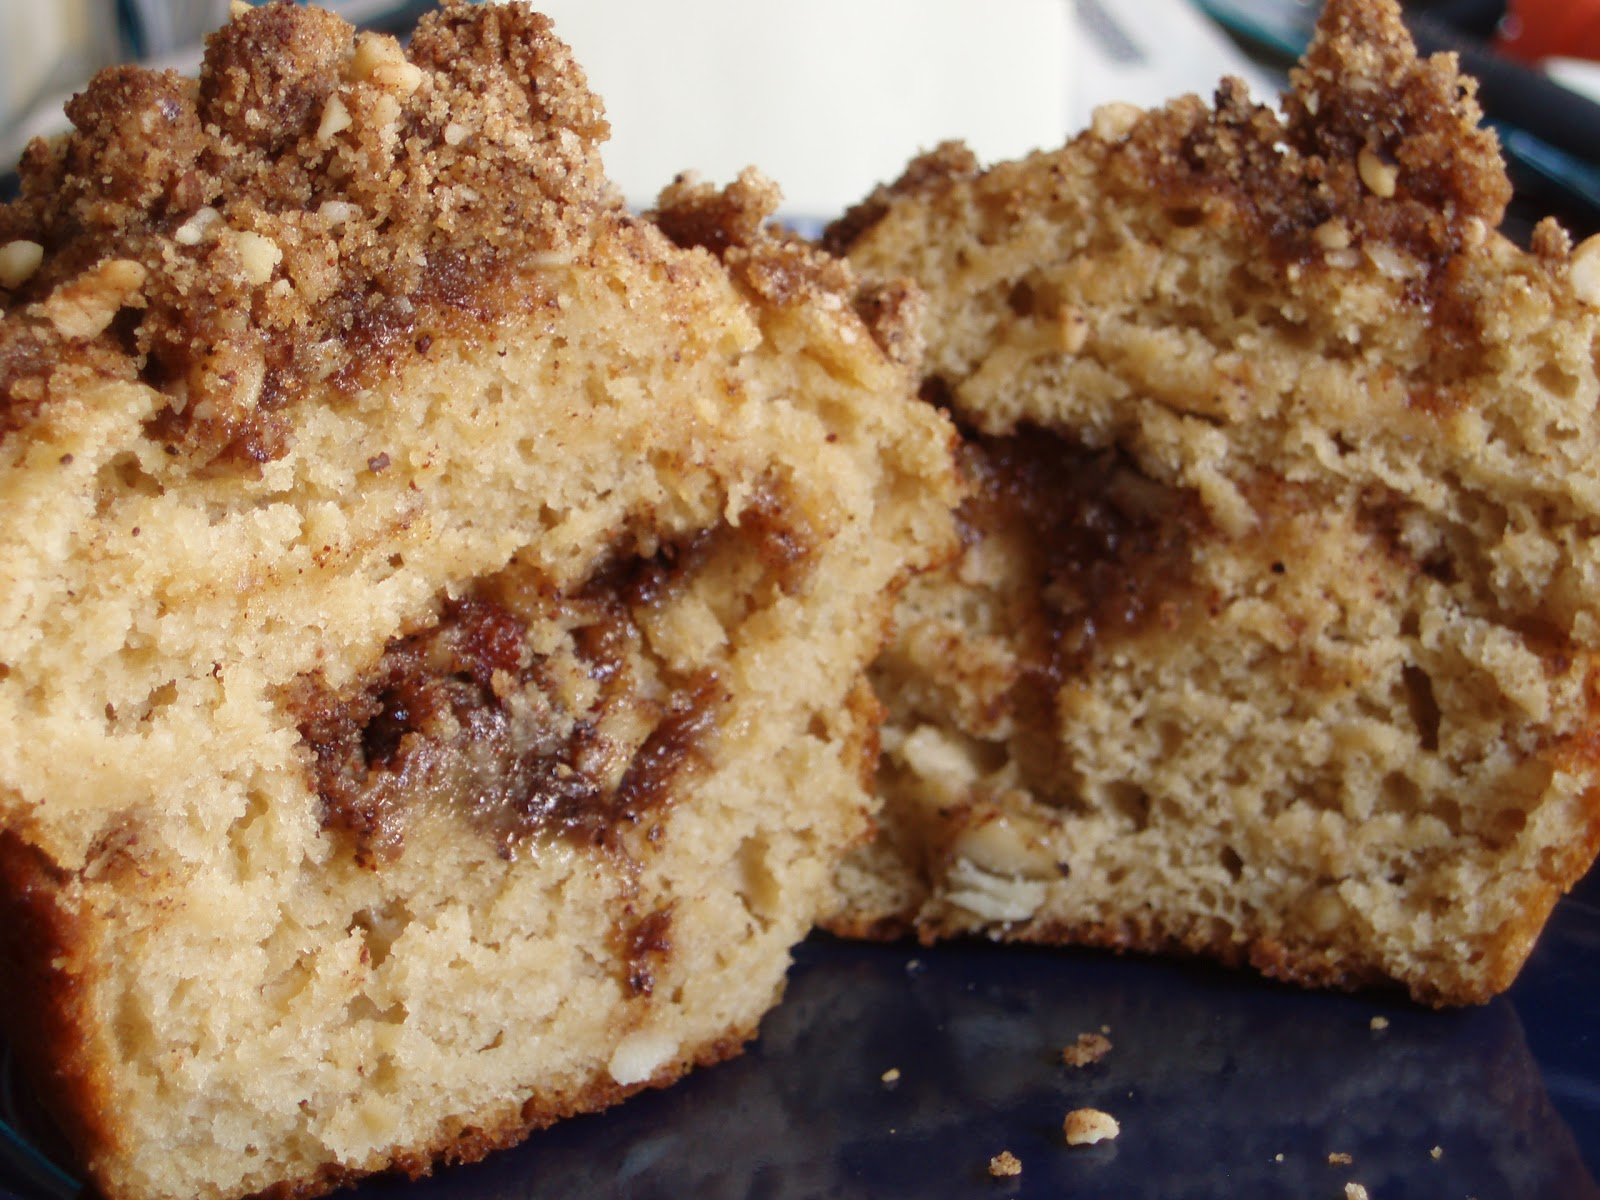 Open Mouth Insert Food: Coffee-Coffee Cake Muffins.